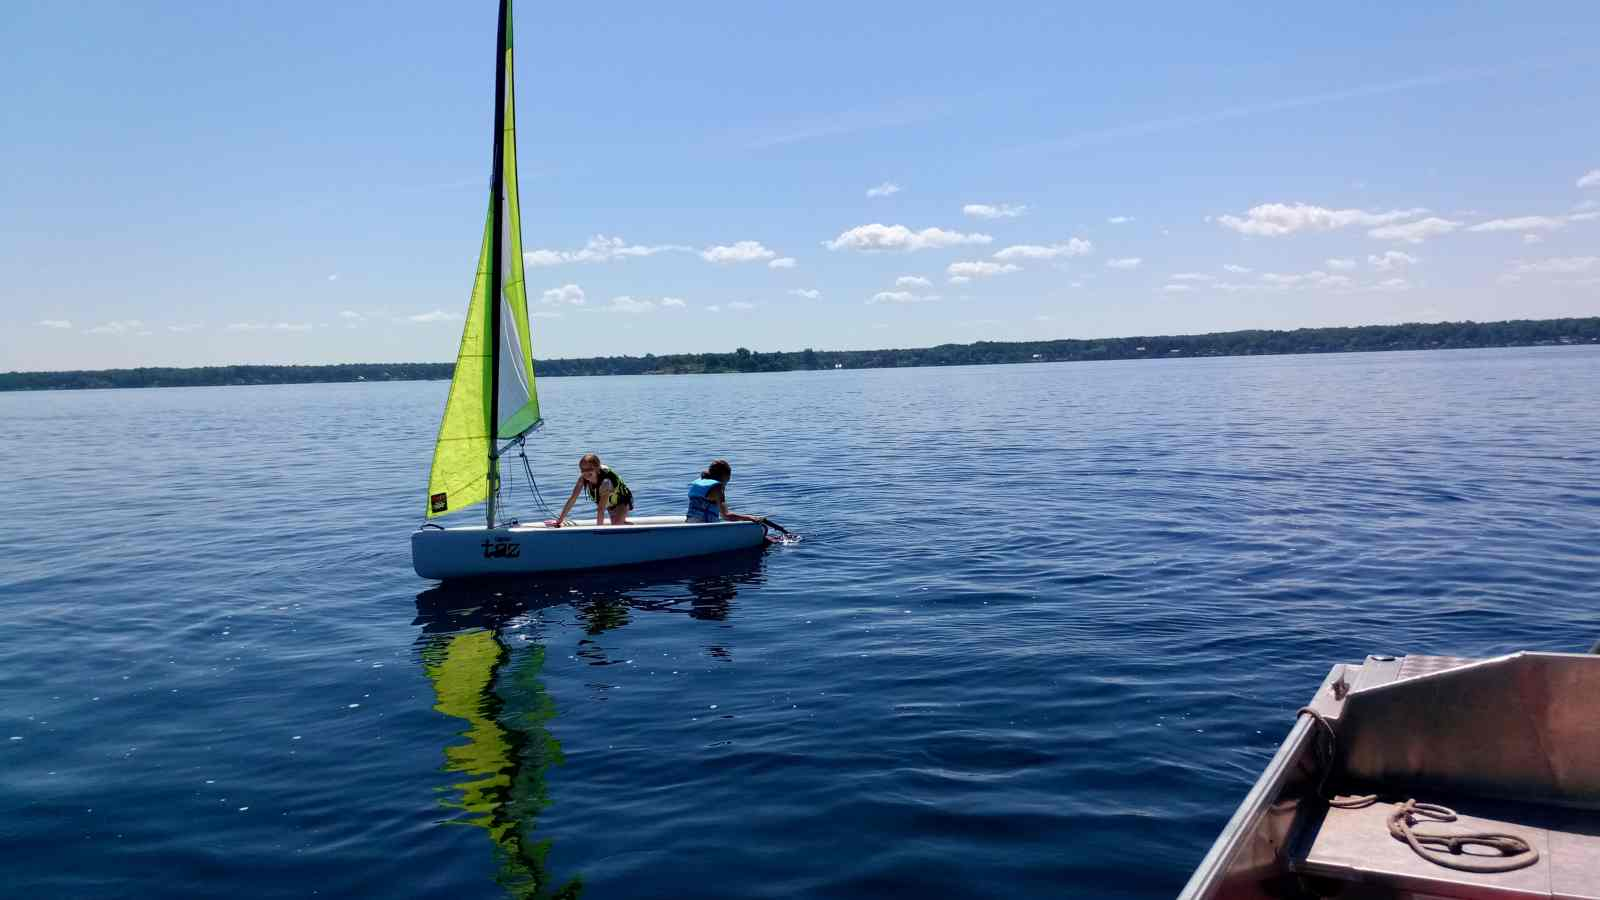 Brockville Yacht Club Sailing School topper taz introduction boat fun.jpg